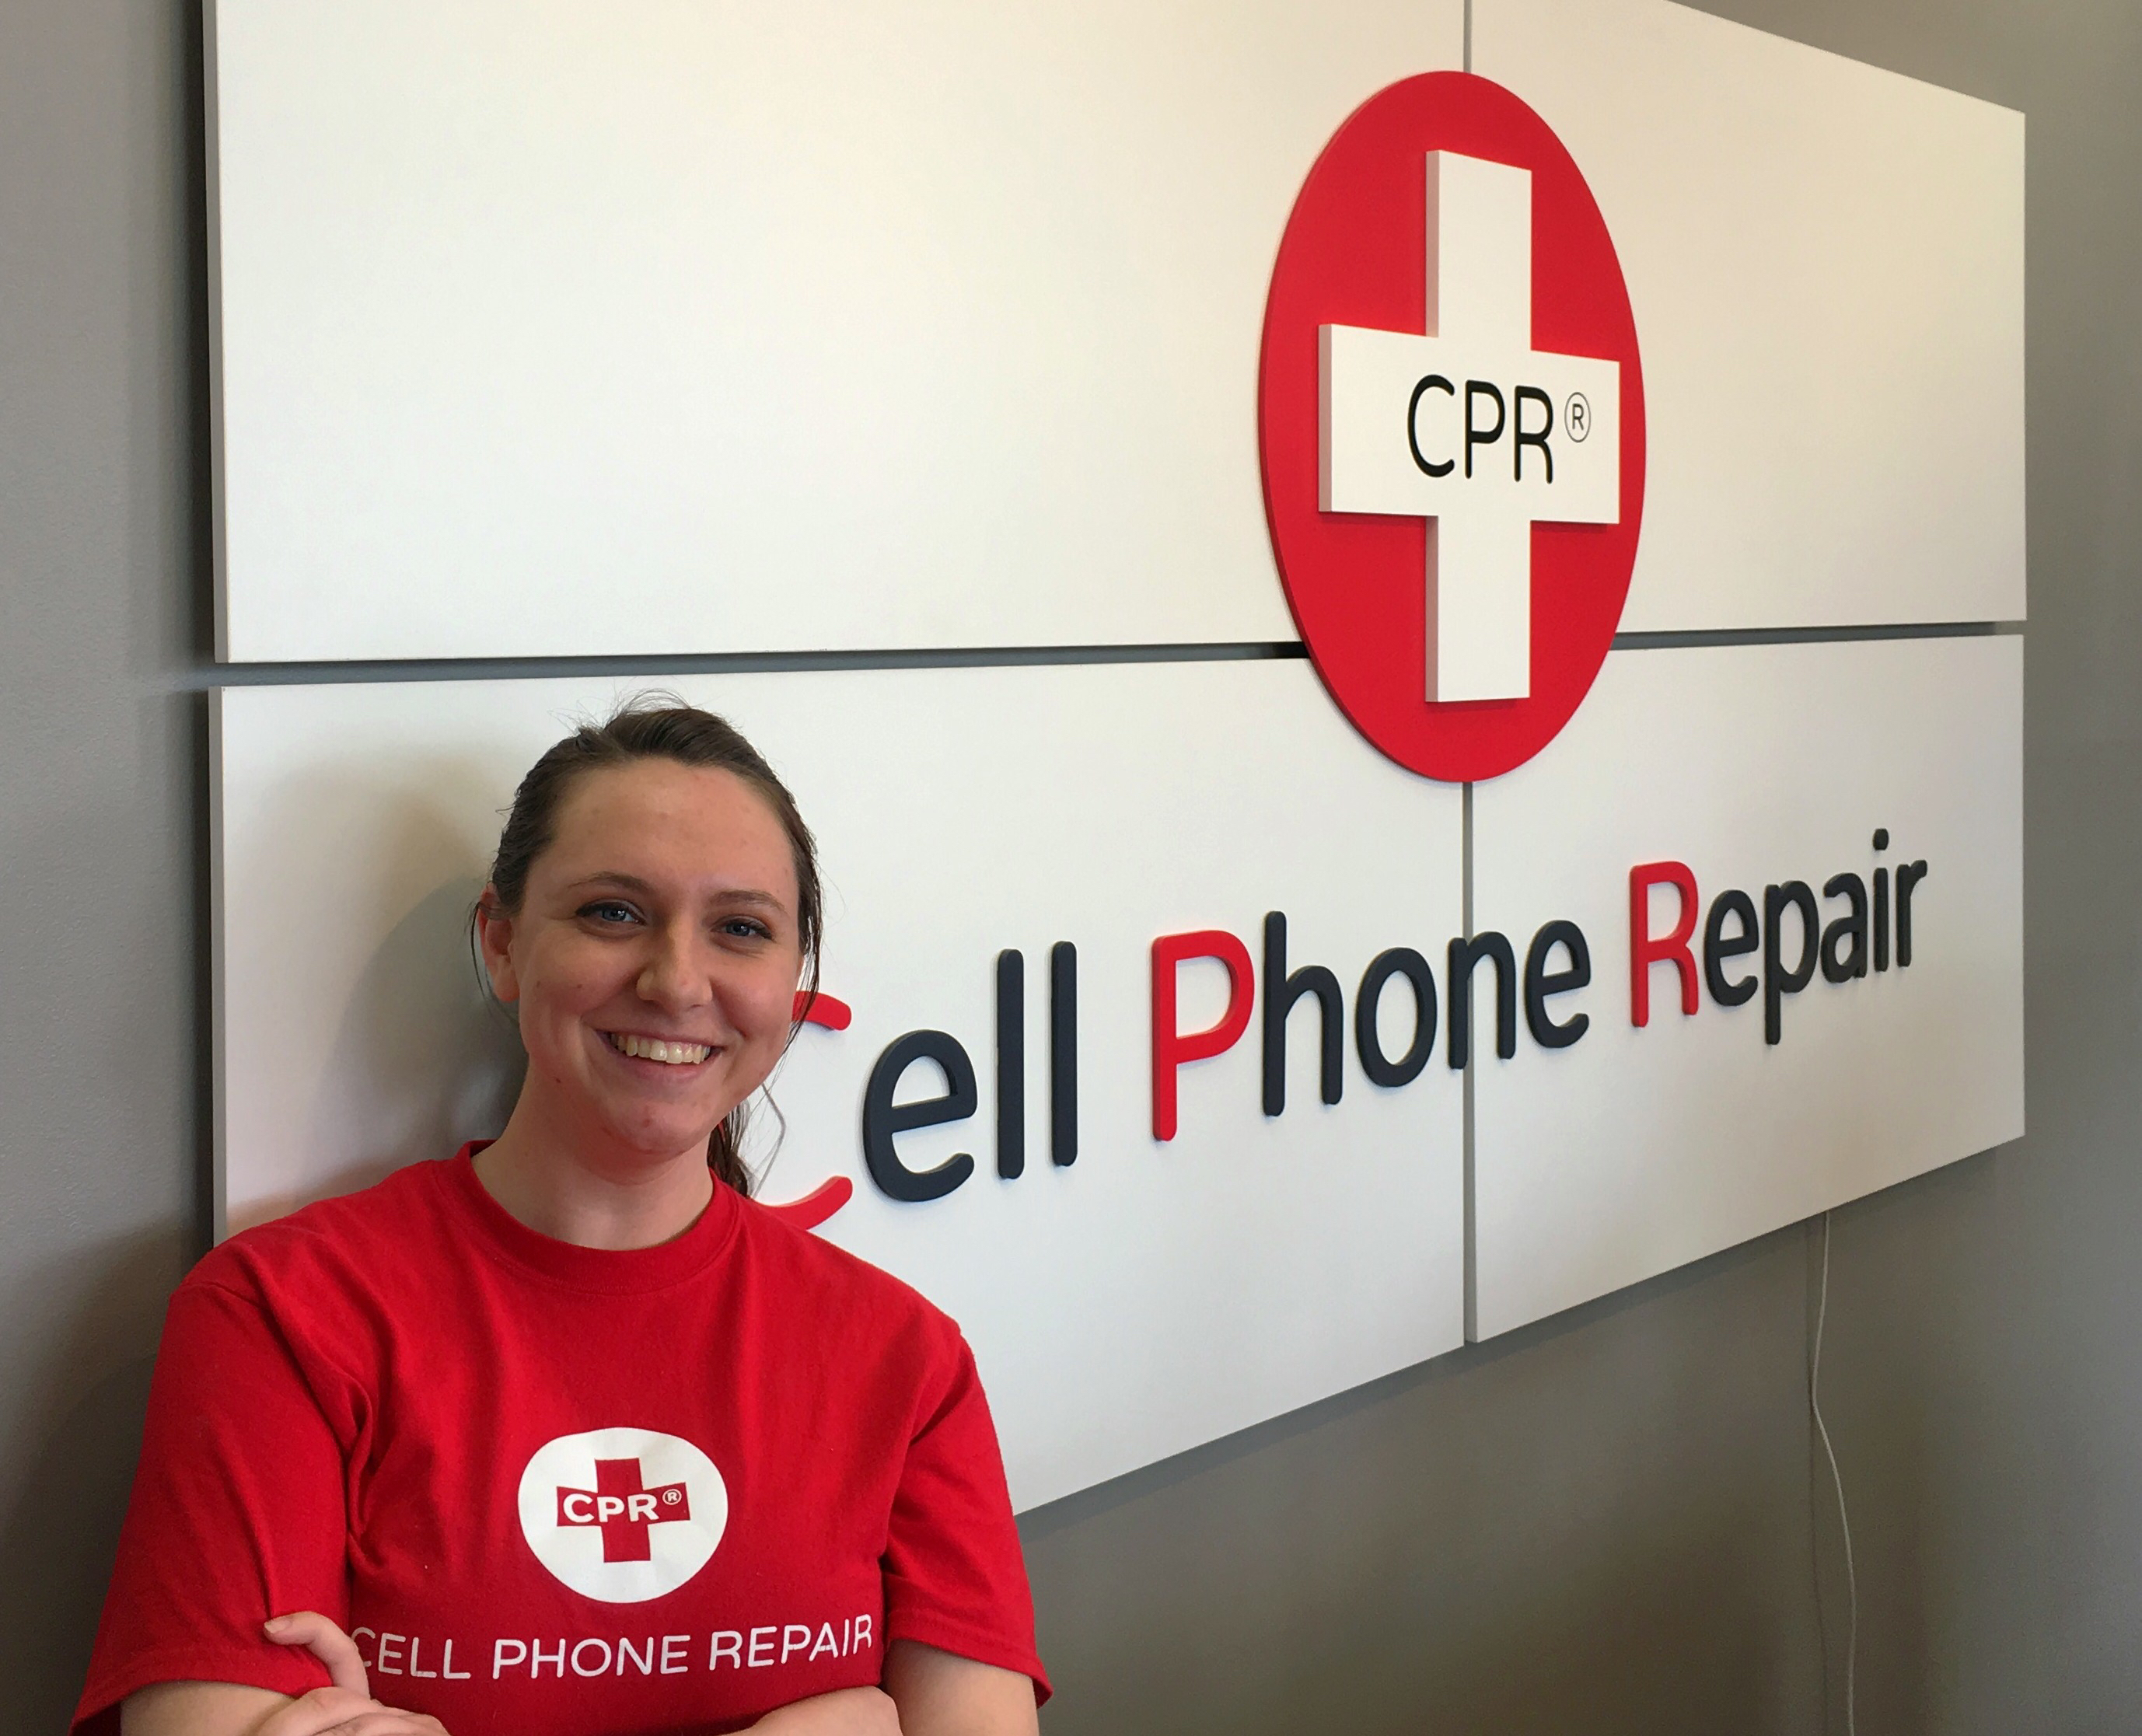 CPR Cell Phone Repair Anderson image 2